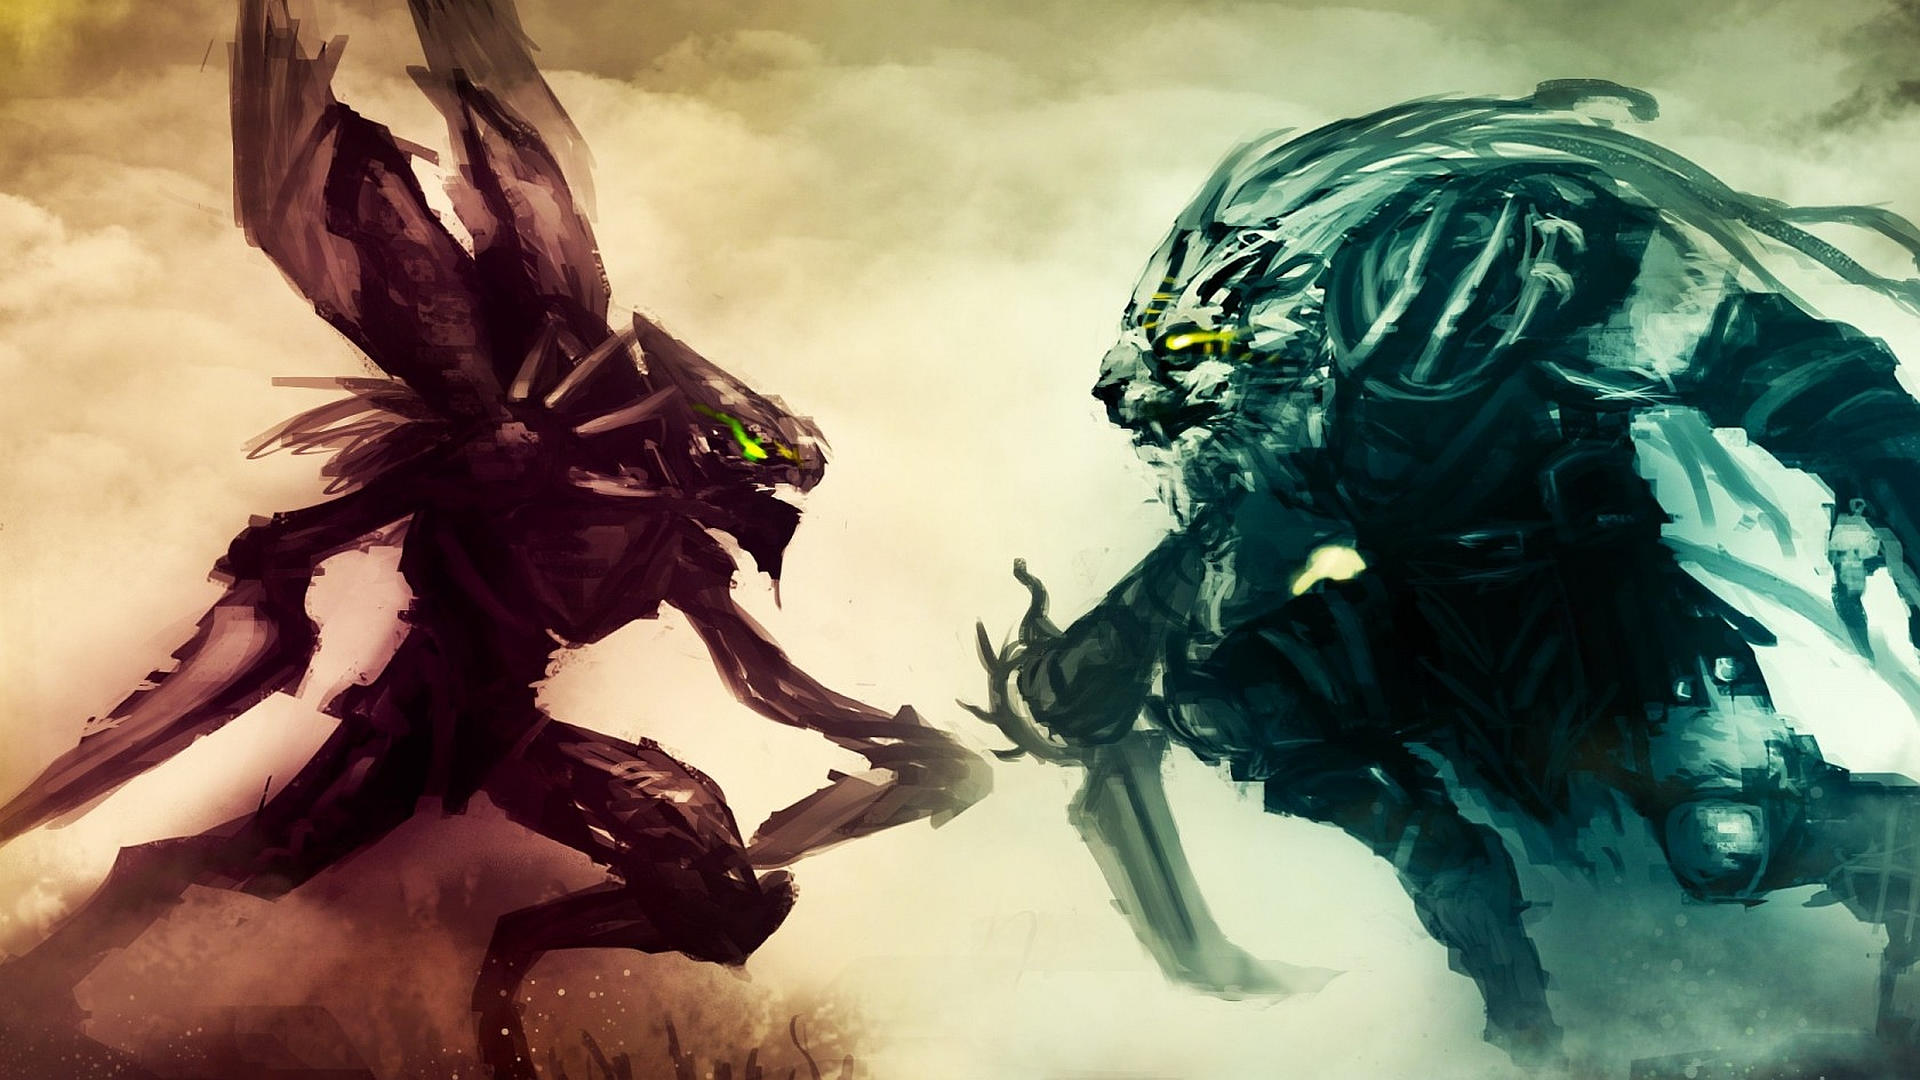 Kha'Zix vs Rengar Fan Art - League of Legends Wallpapers